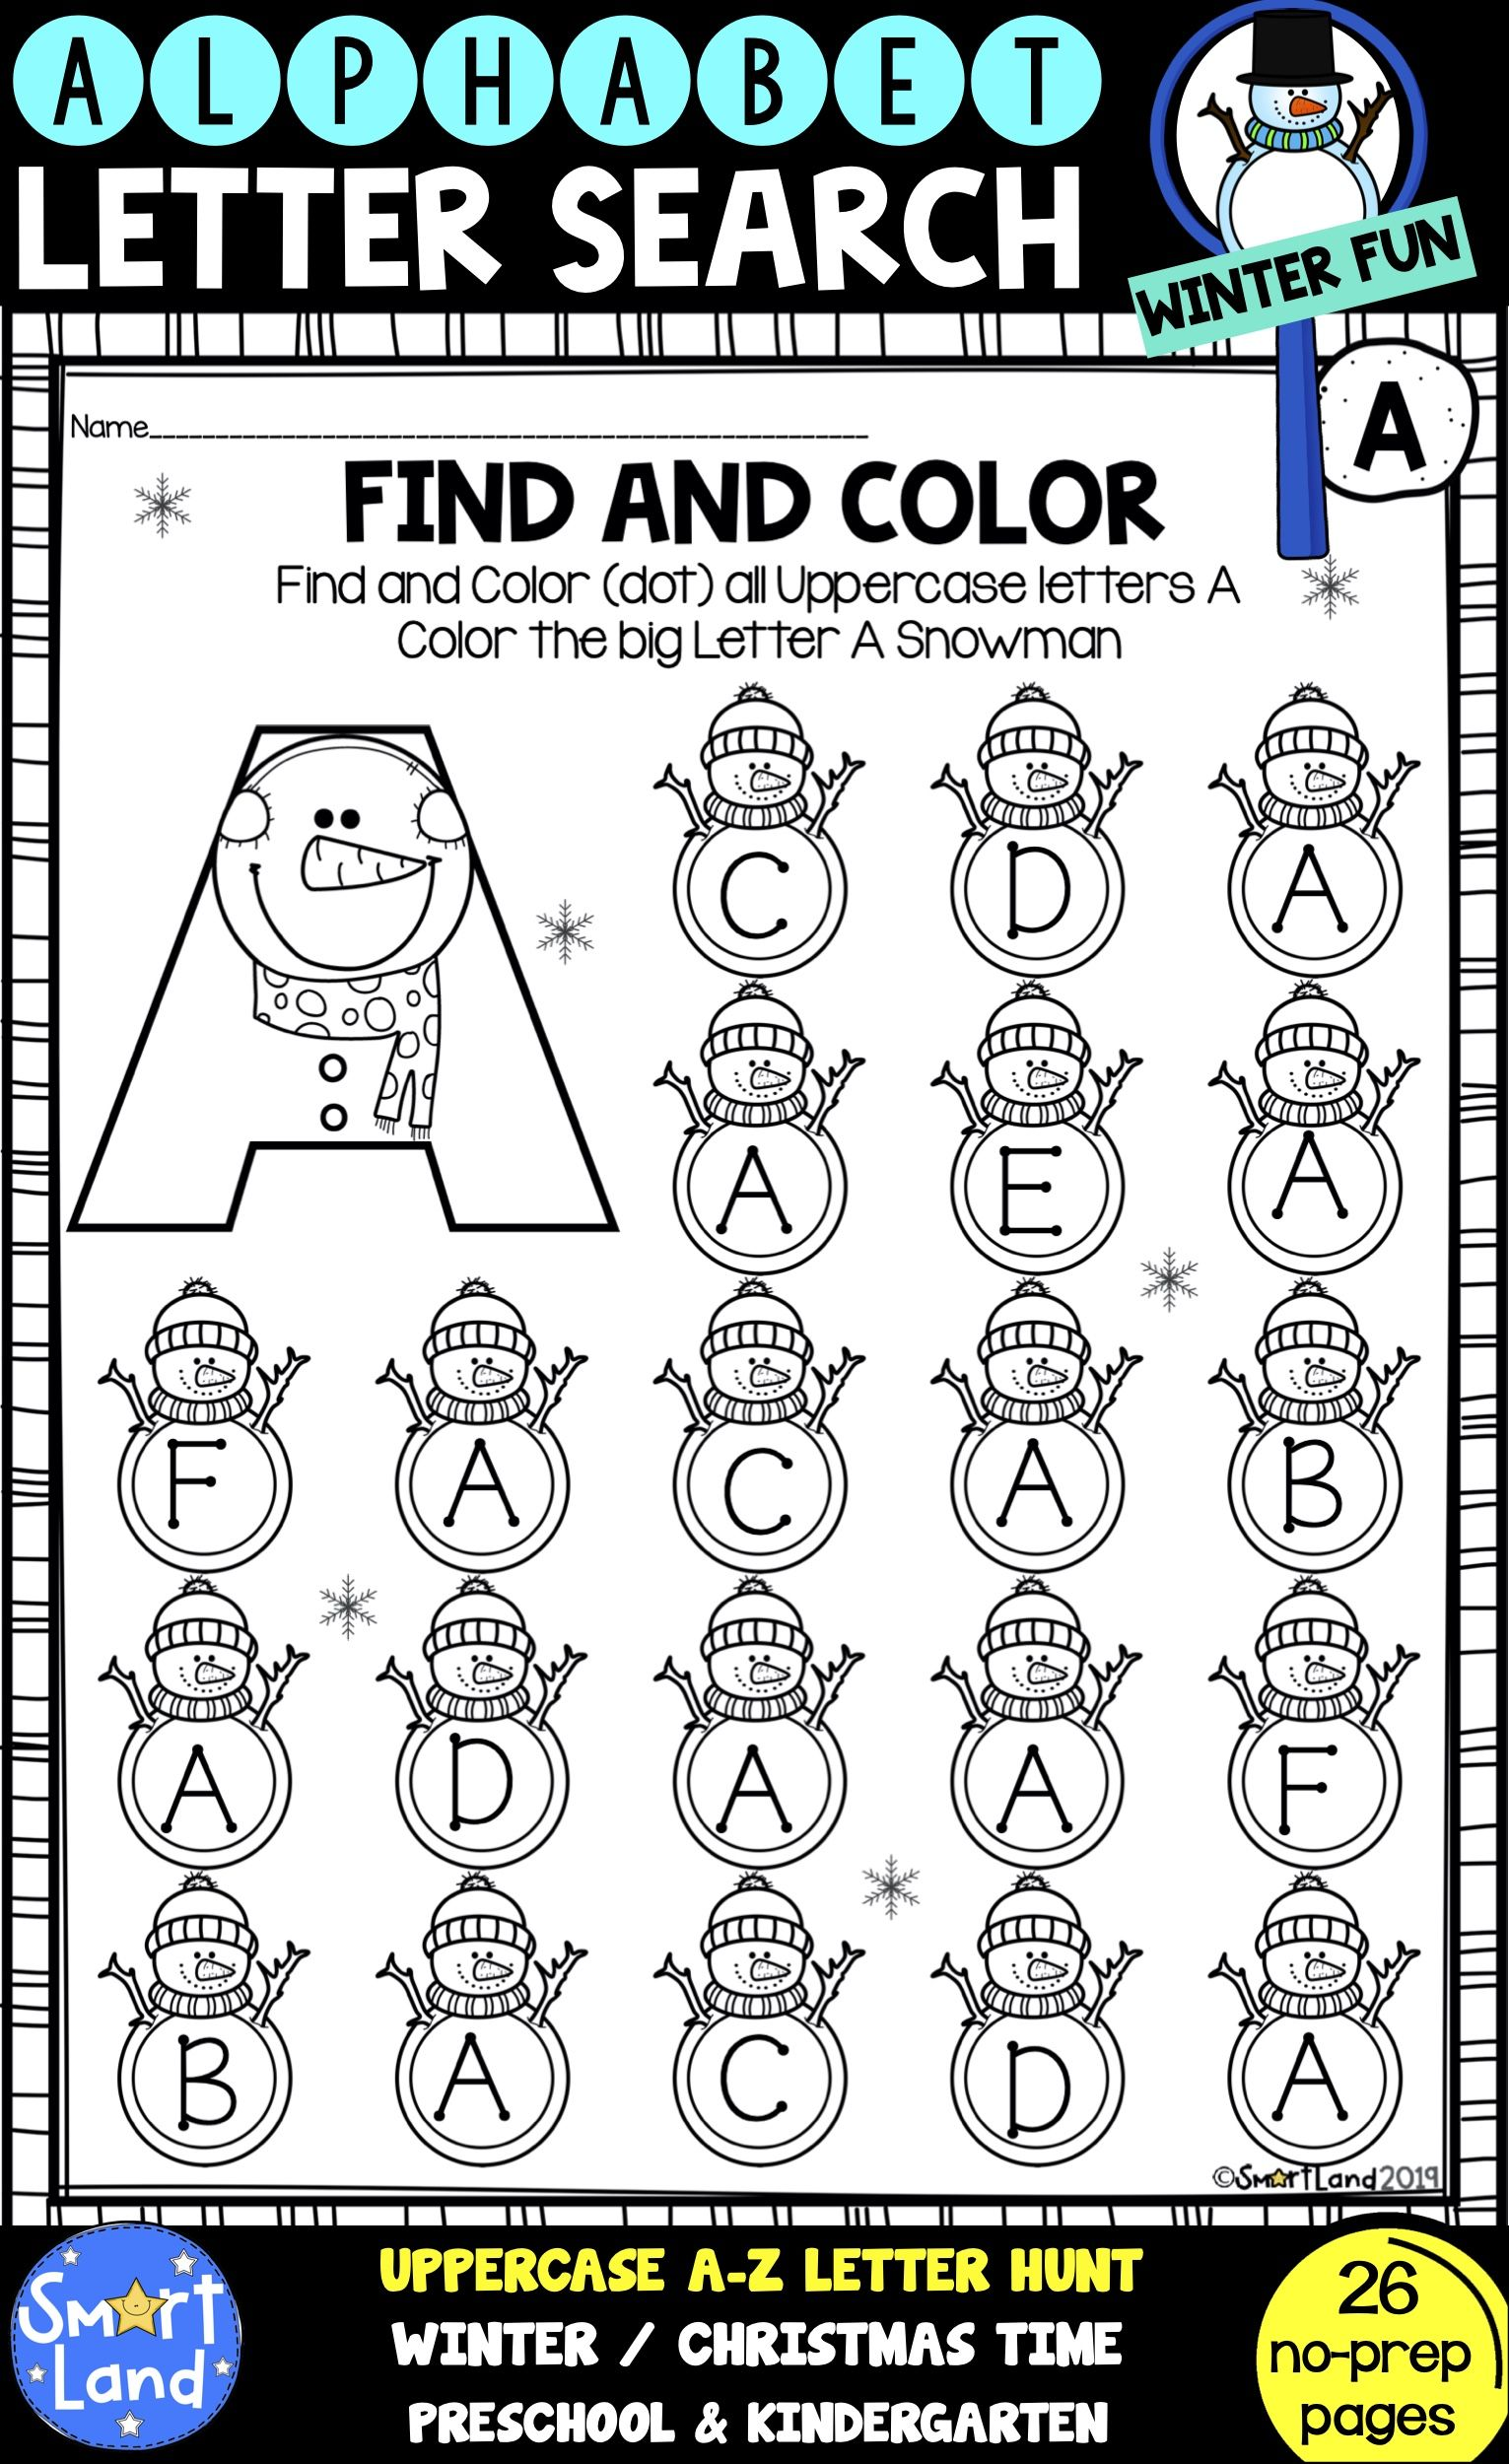 Alphabet Practice Letter Search Snowman